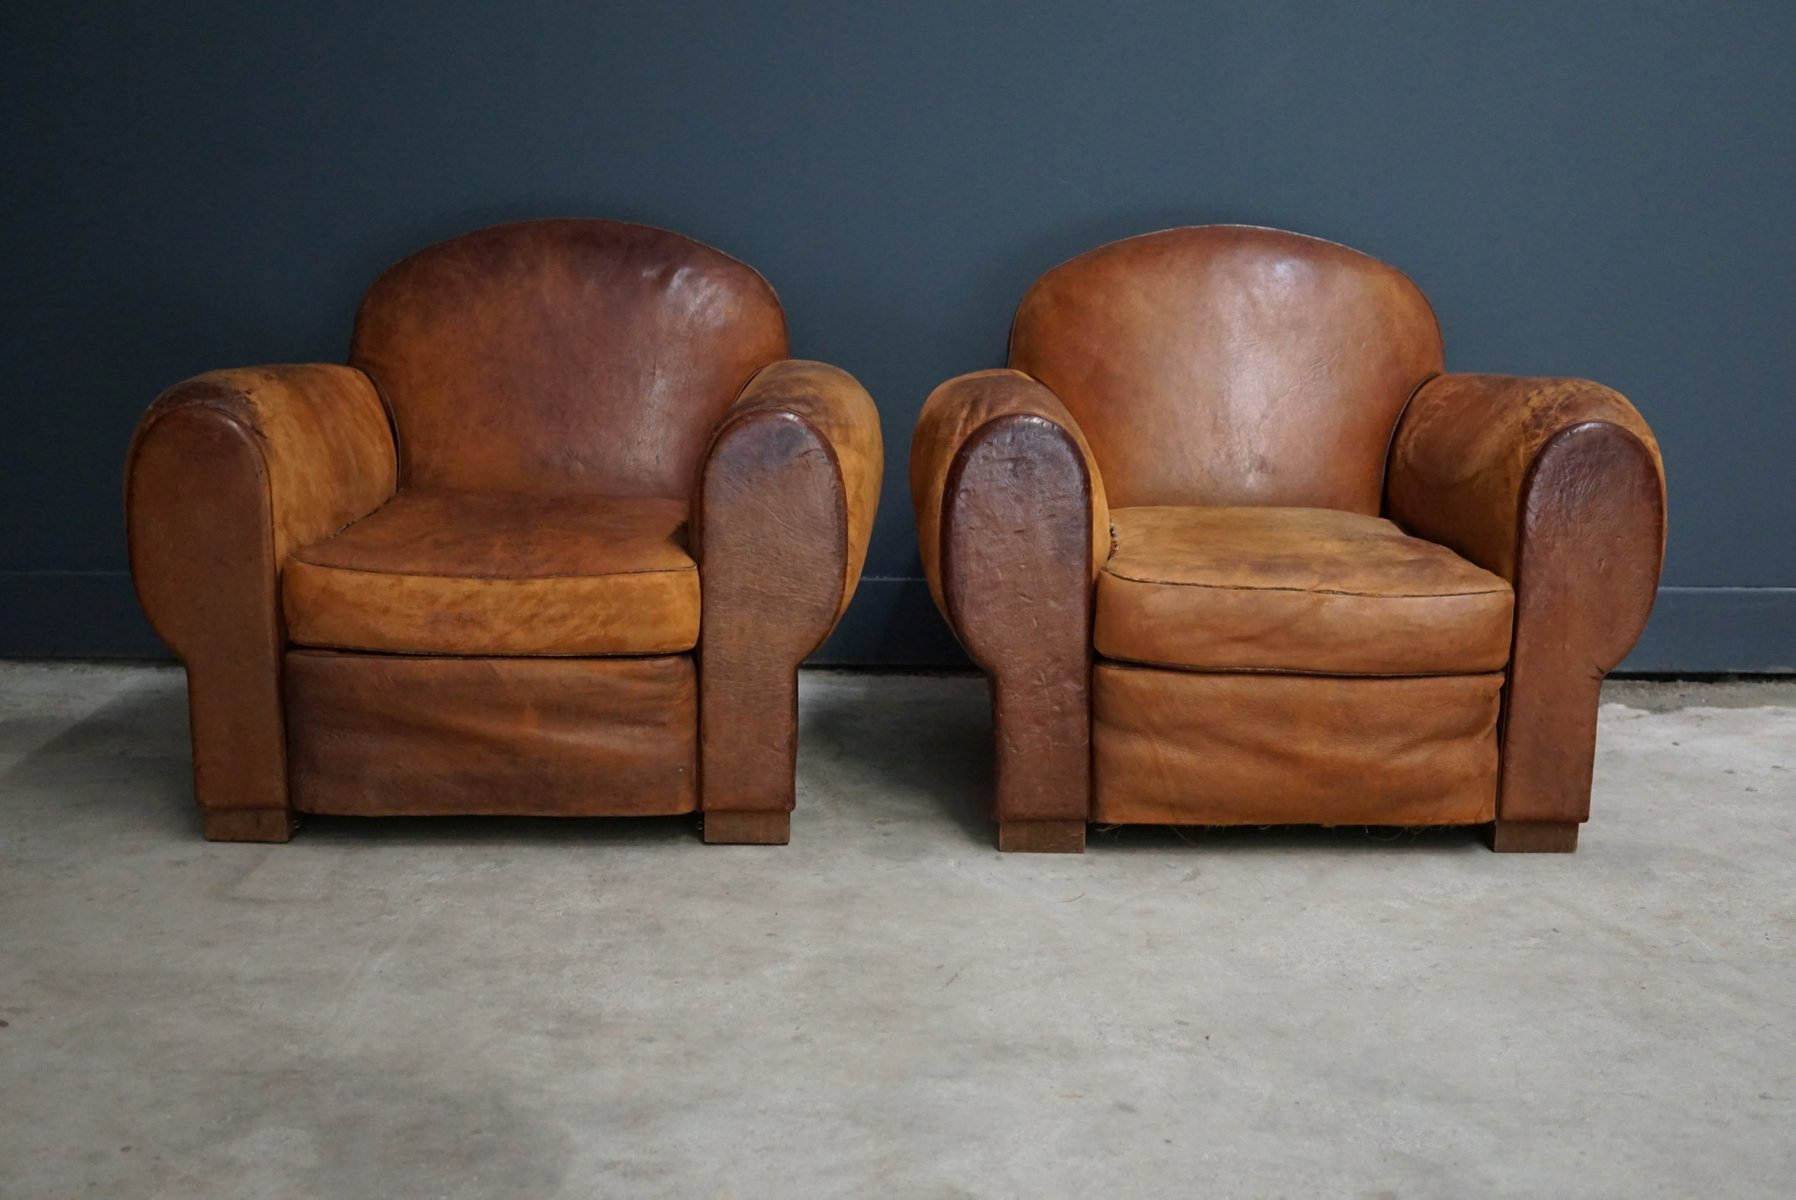 Vintage Club Chairs Vintage French Cognac Leather Club Chairs Set Of 2 For